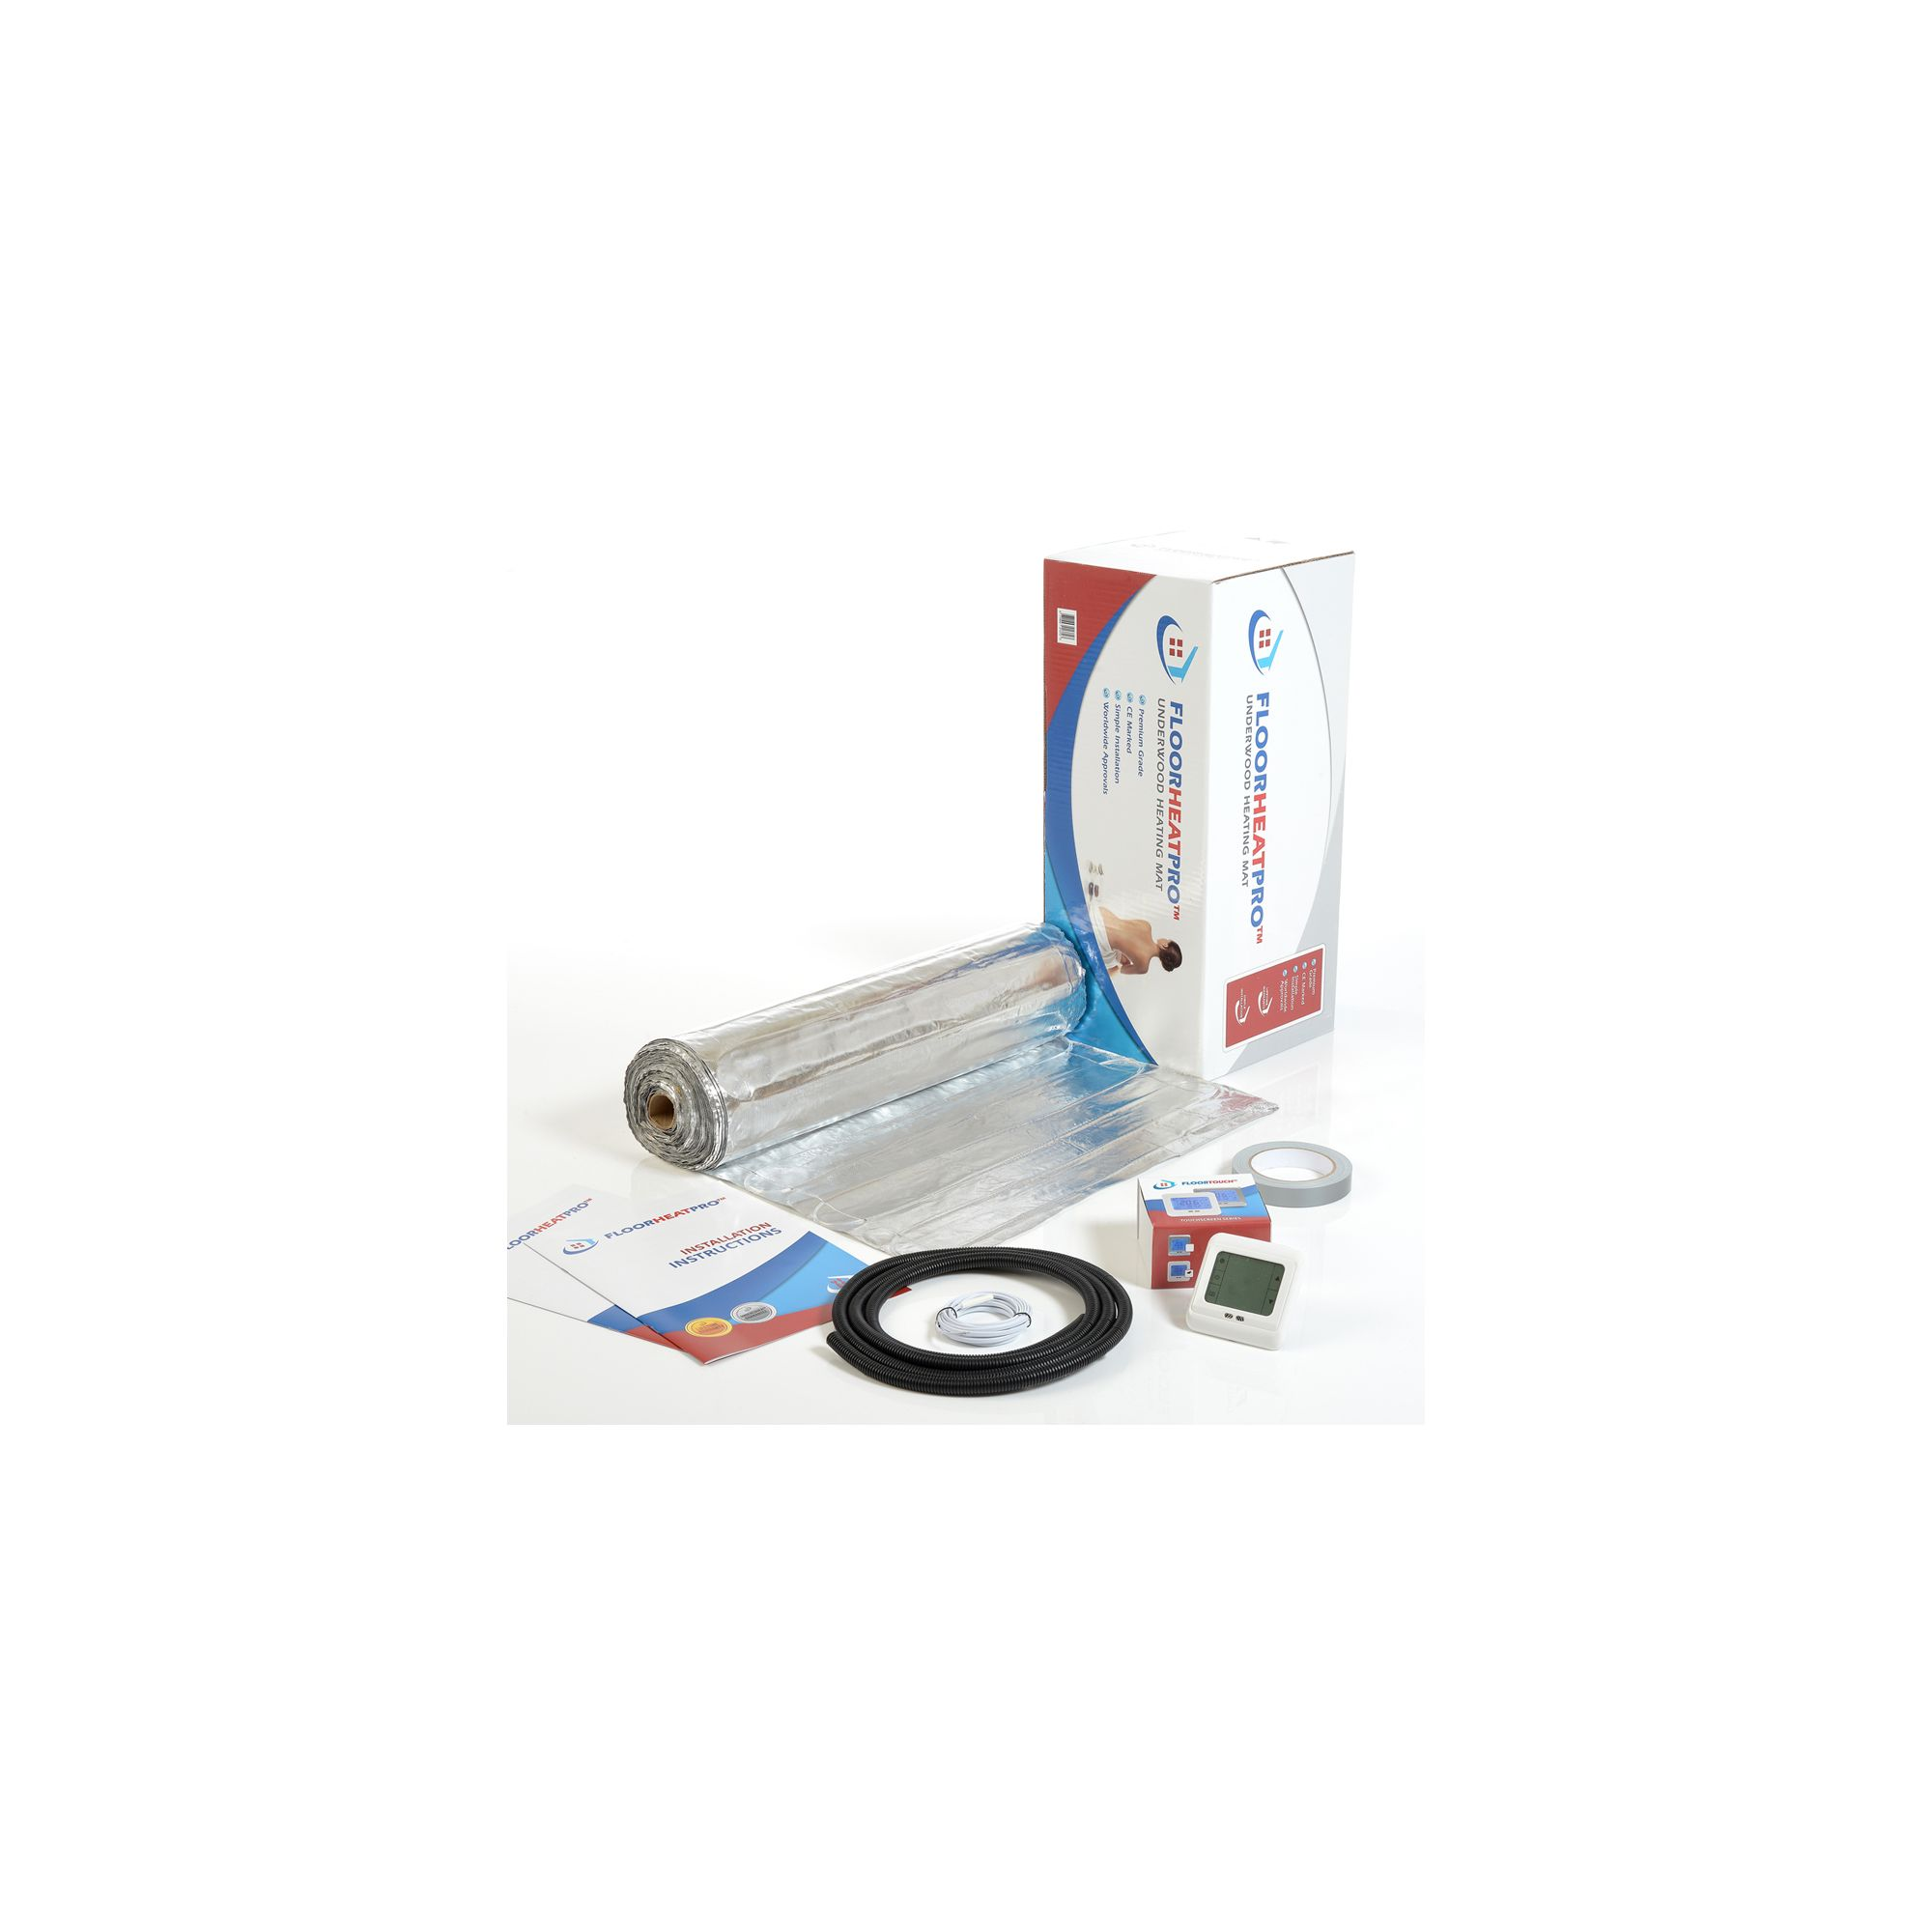 16.0 m2 - Underfloor Electric Heating Kit - Laminate at Tesco Direct